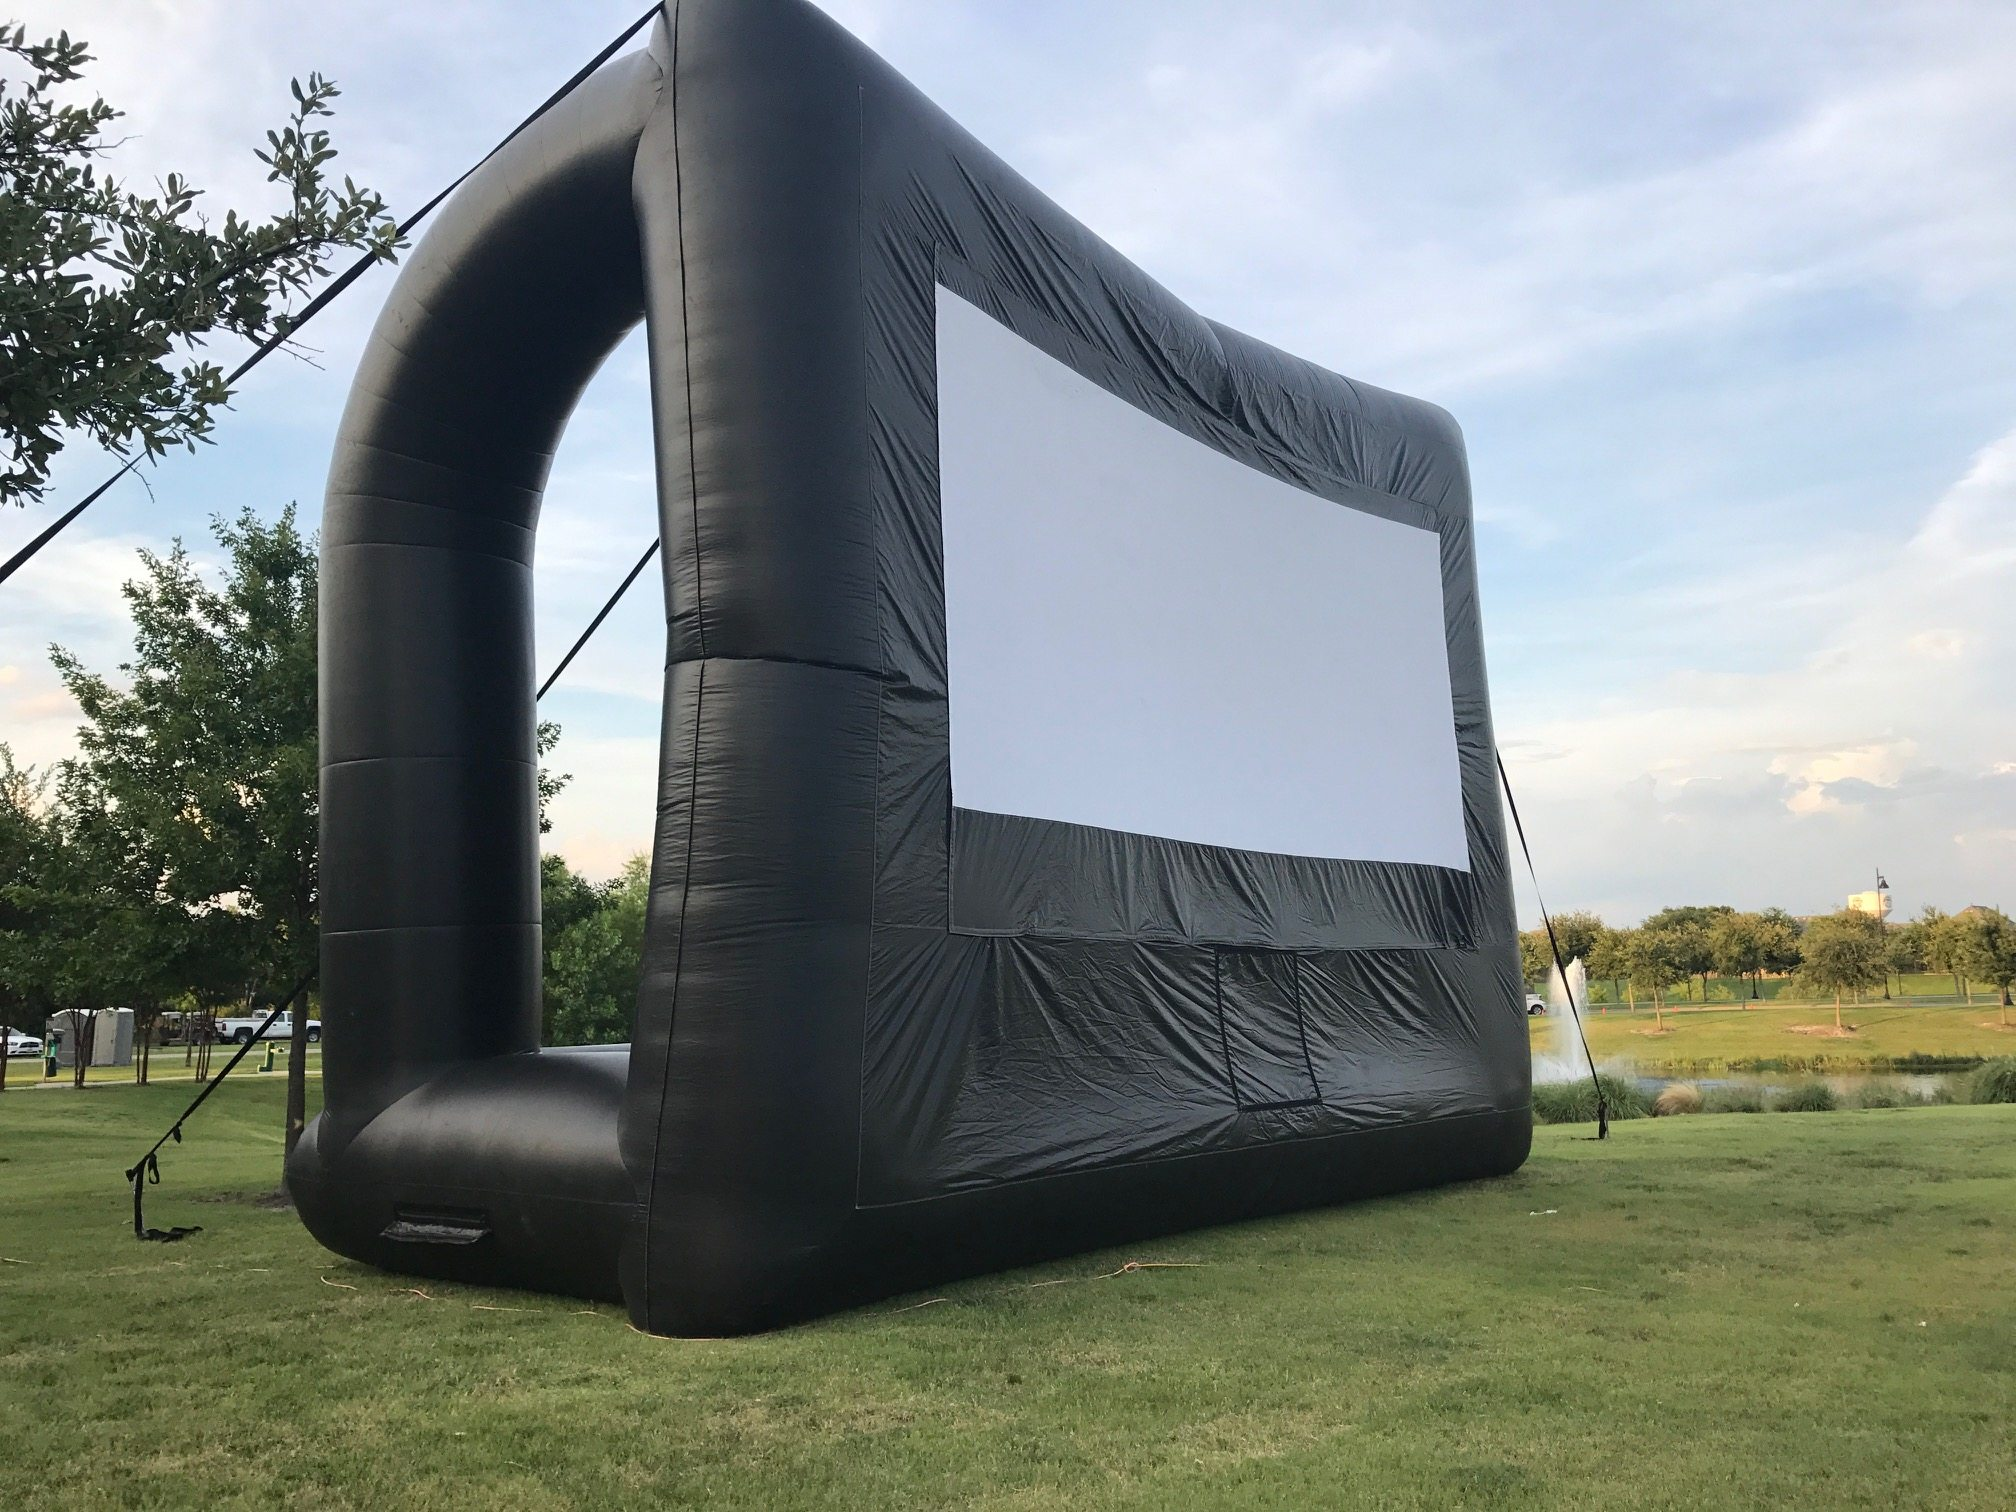 Outdoor movie hire - Glow in the dark stars for the ceiling